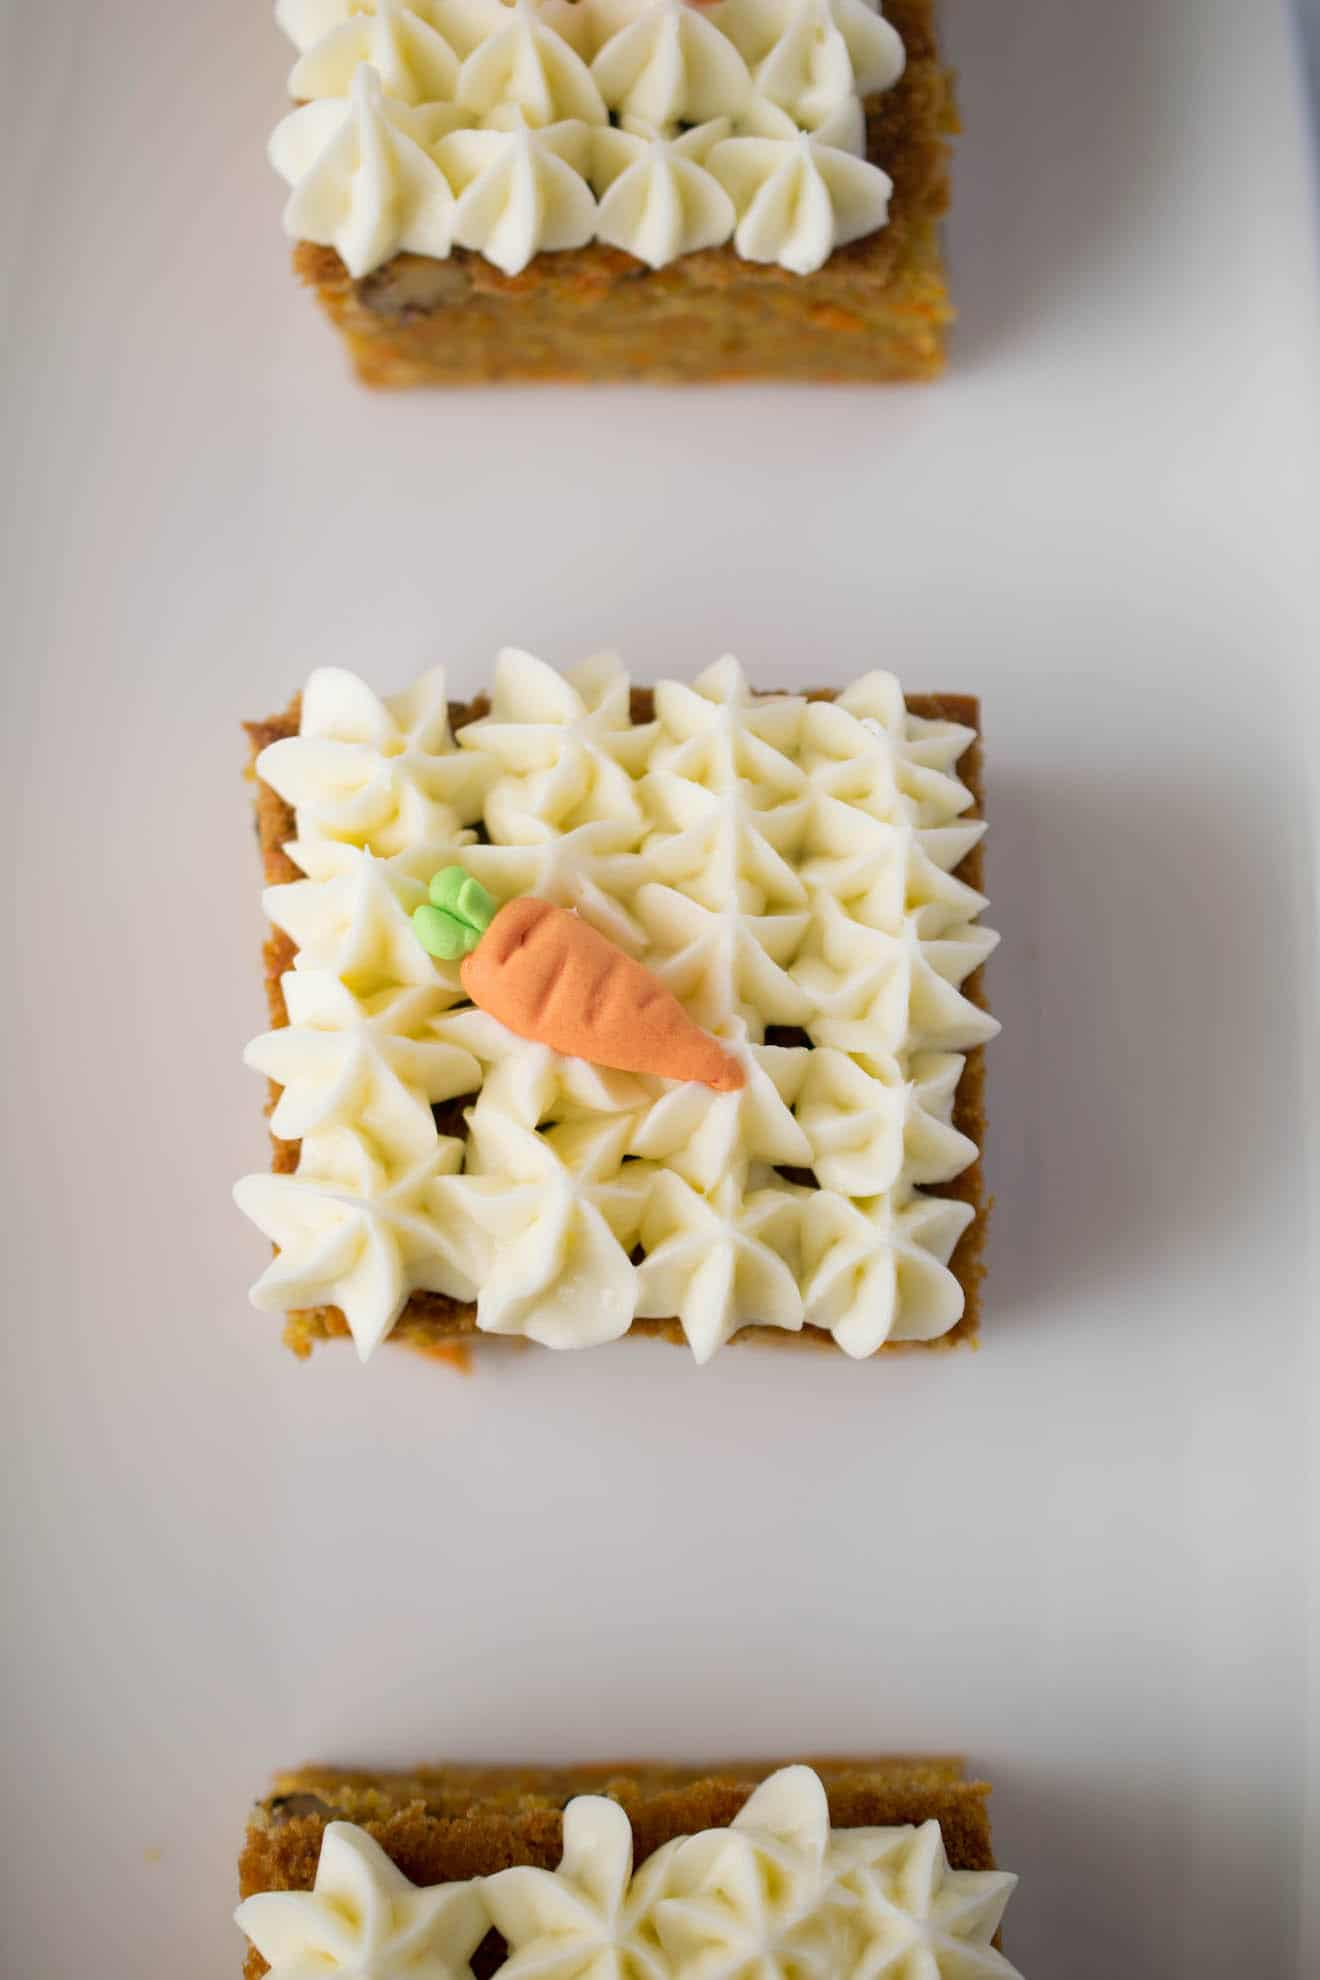 Pretty piped cream cheese frosting on top of carrot cake with a decorative sugar carrot